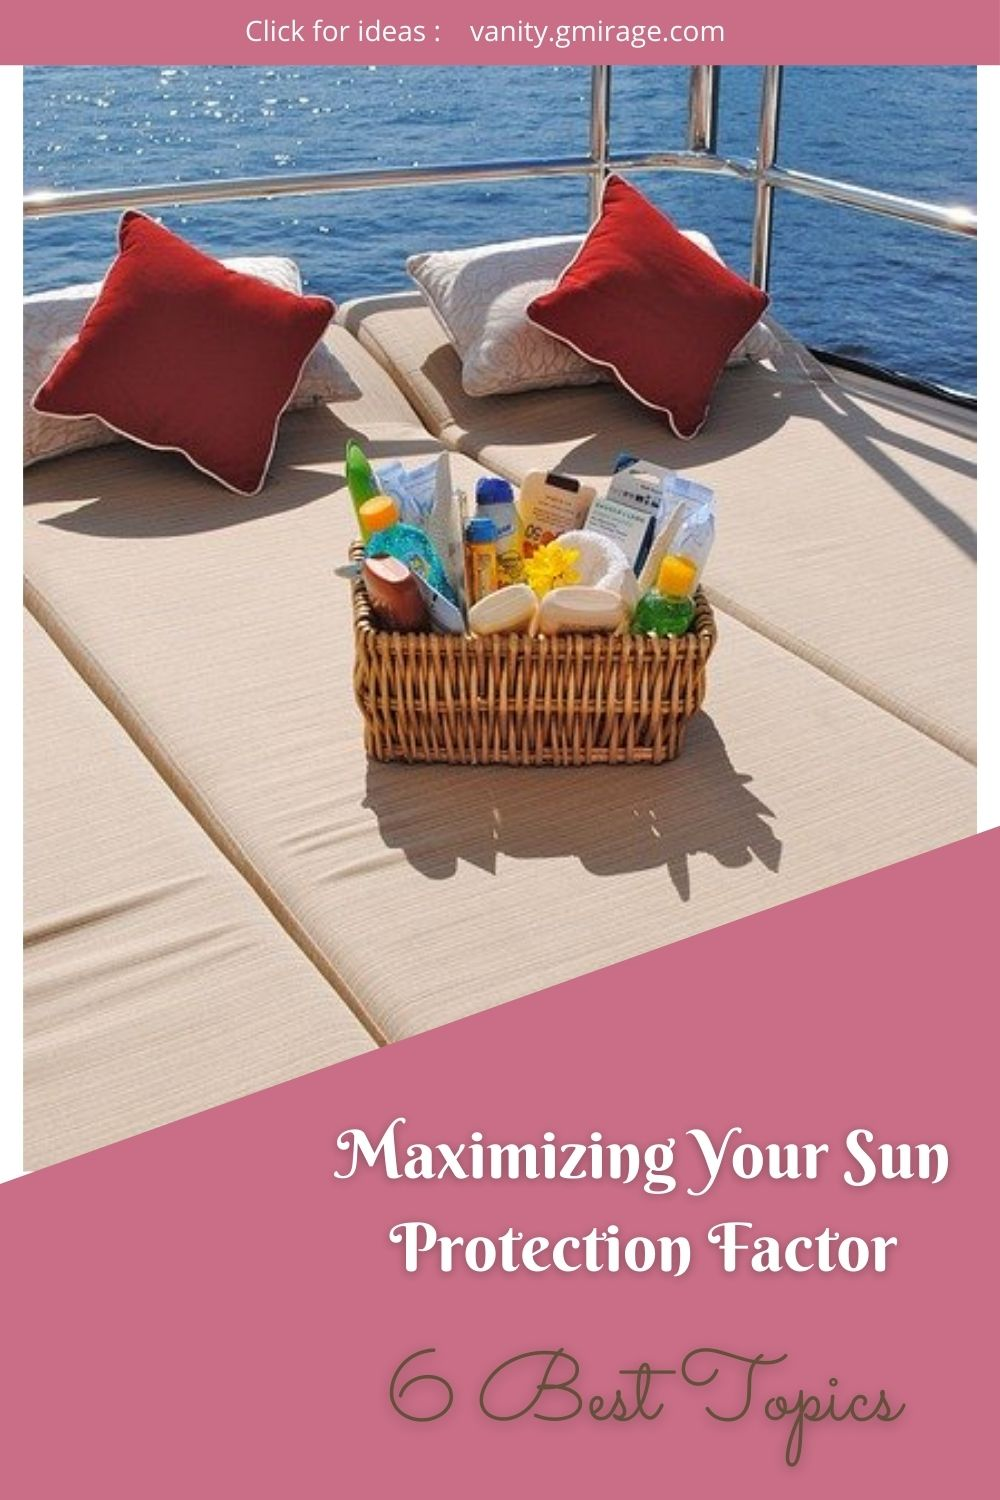 Maximizing Your Sun Protection Factor: 6 Best Topics